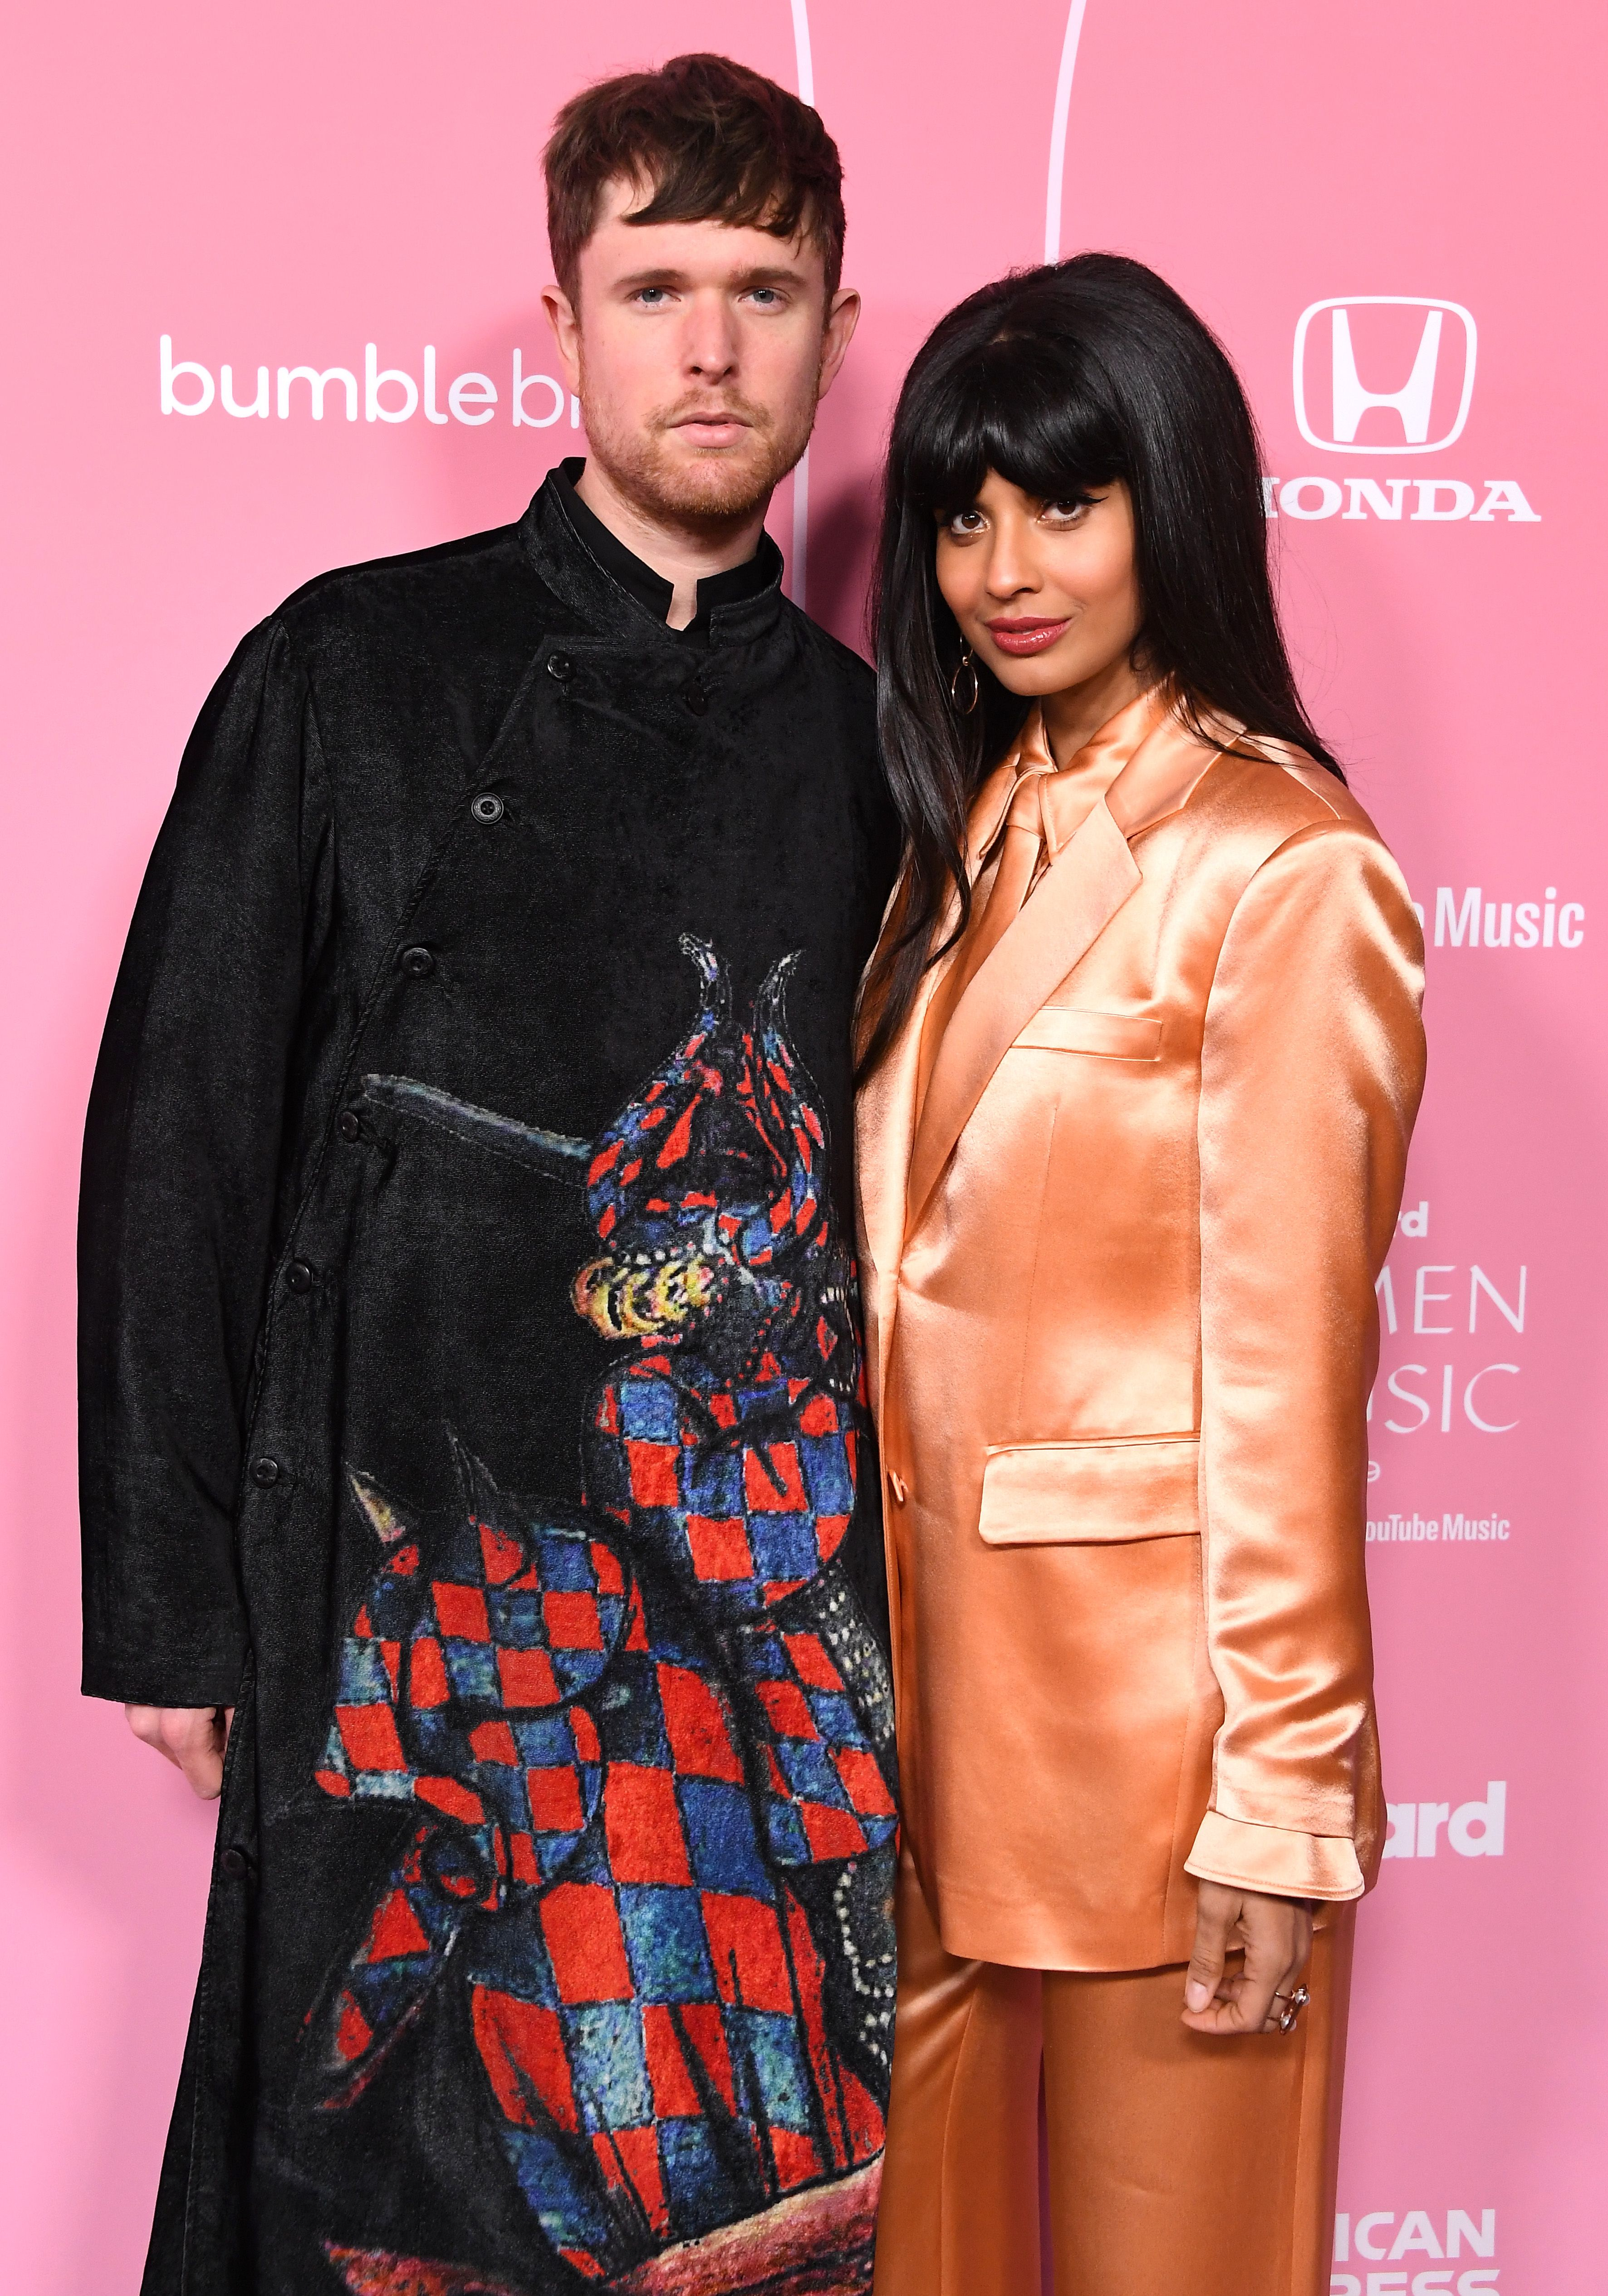 James Blake and Jameela Jamil at the 2019 Billboard Women In Music in Los Angeles   Source: Getty Images